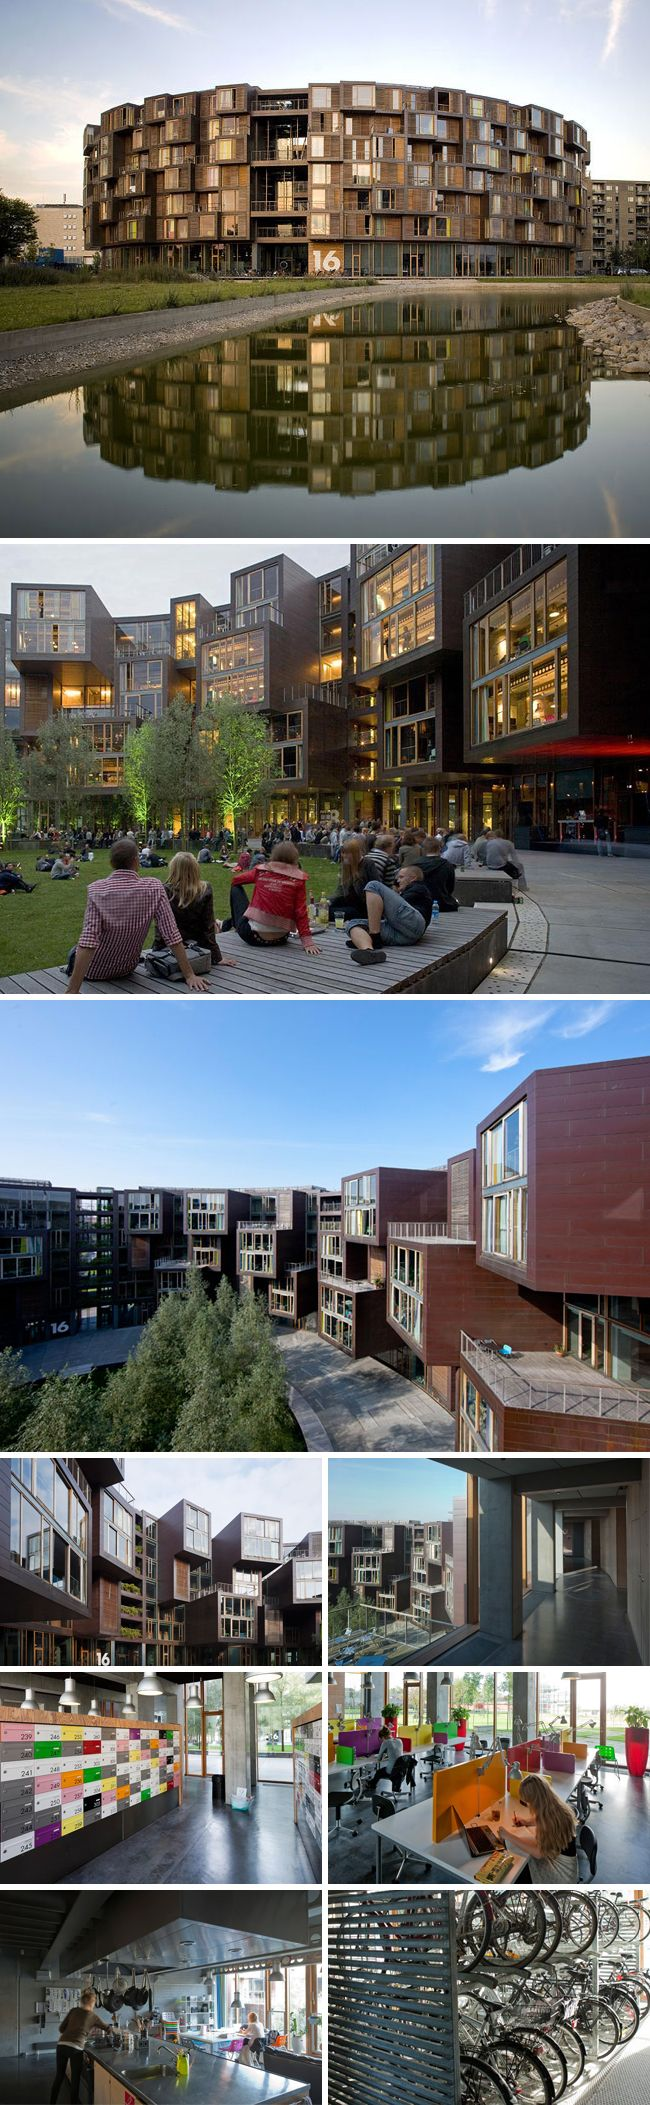 DENMARK NOT JAKARTA! Coolest dorm ever! Designed by Lundgaard & Tranberg, Copenhagen's Tietgen Student Hall (Tietgenkollegiet) is a 288,000-square-foot, seven-story circular residential building outfitted with everything a college student would want, including a bike workshop, music rehearsal rooms and gourmet kitchens.